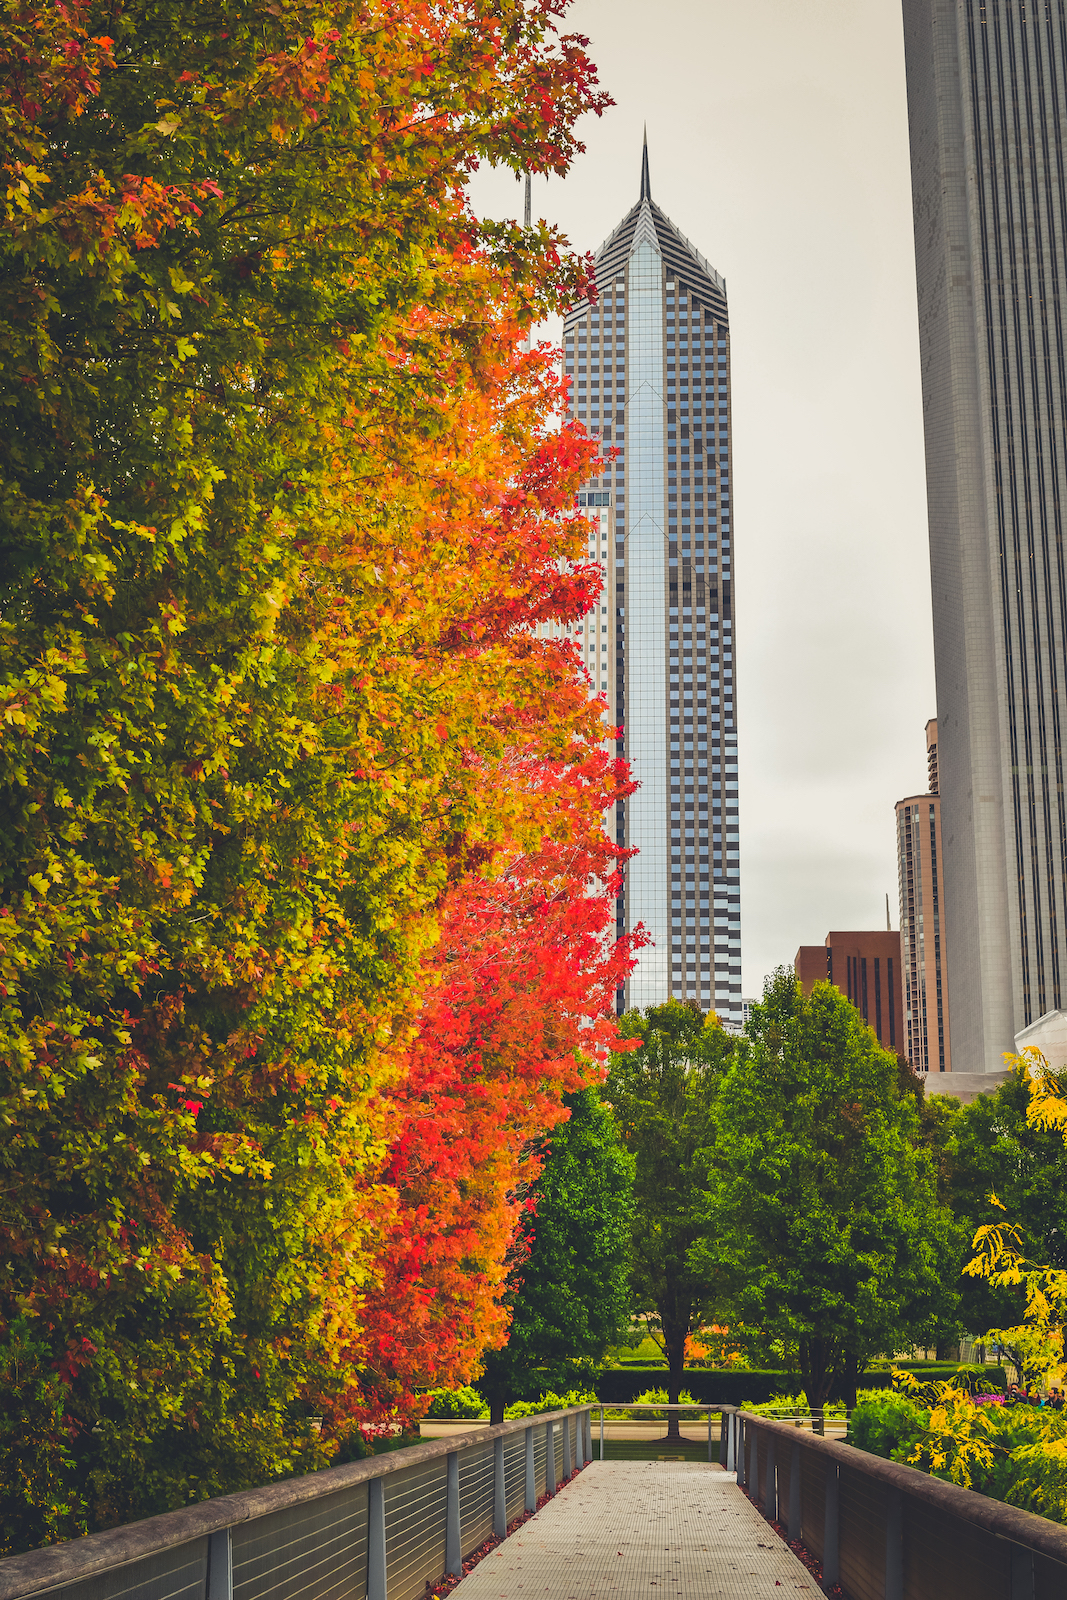 A First Timers Weekend City Guide to Chicago Millennium Park Fall time autumn Travel guide to chicago illinois blog what to do what to see where to go 3 days-1